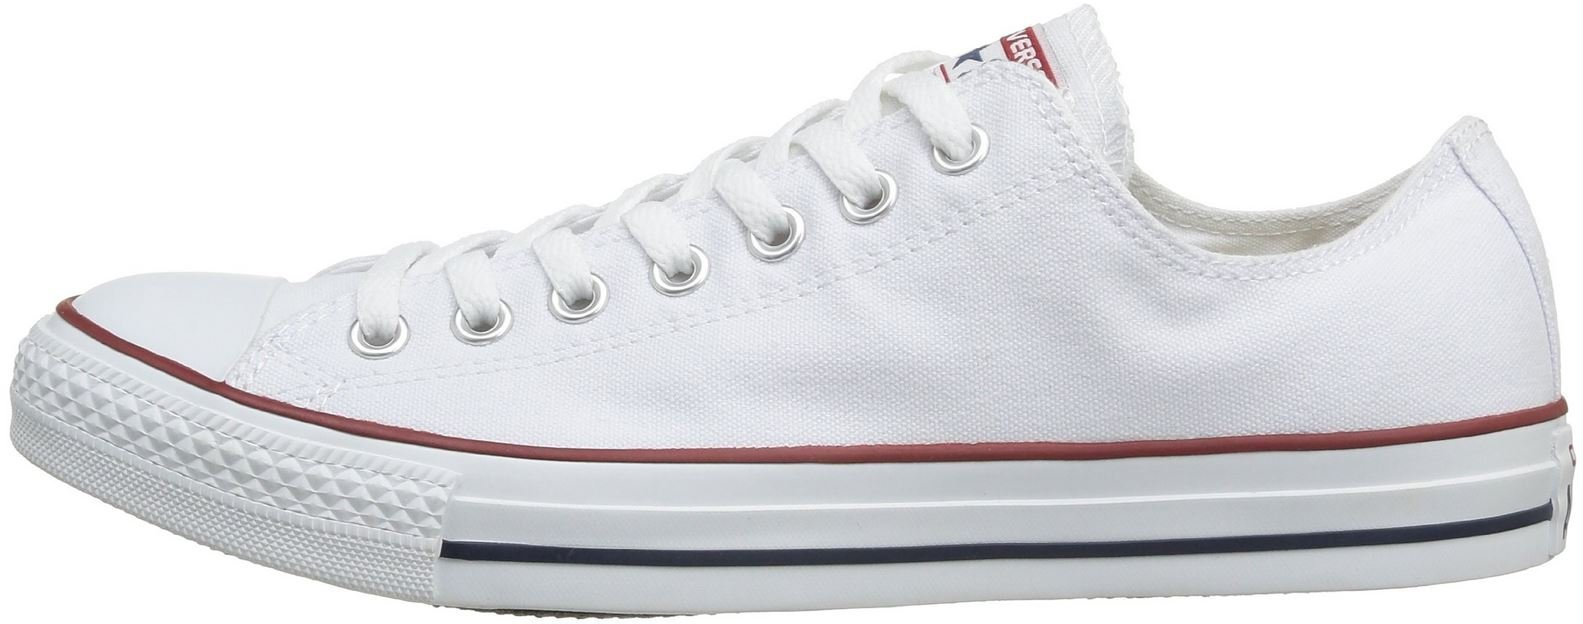 Converse Unisex Chuck Taylor All Star Low Top Optical White Sneakers - 10.5 D(M)